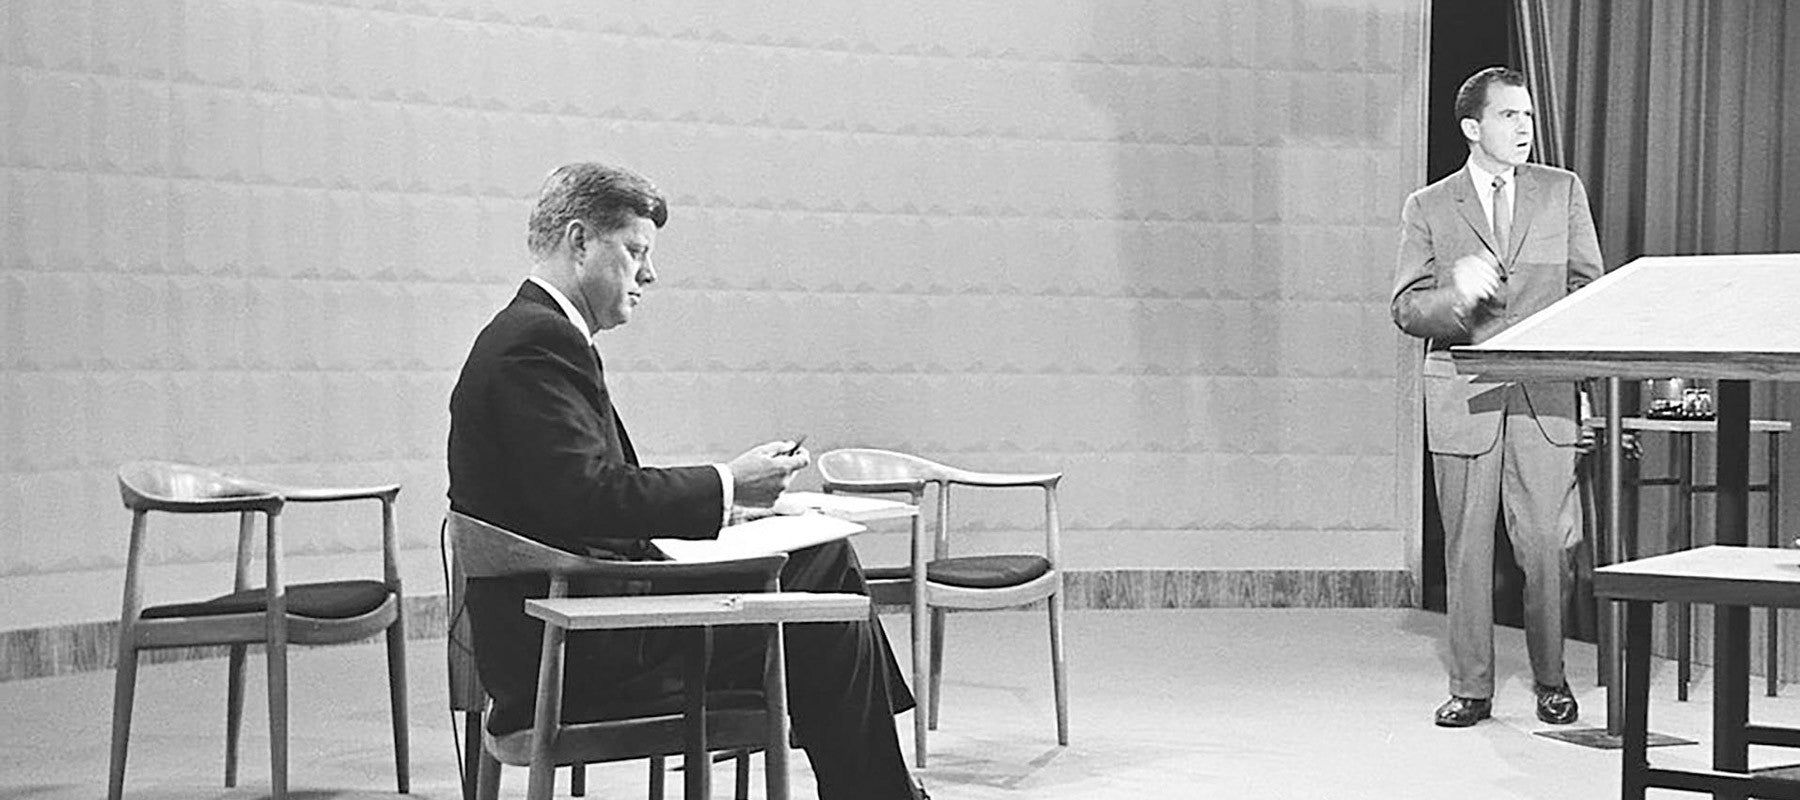 Kennedy chair - JFK